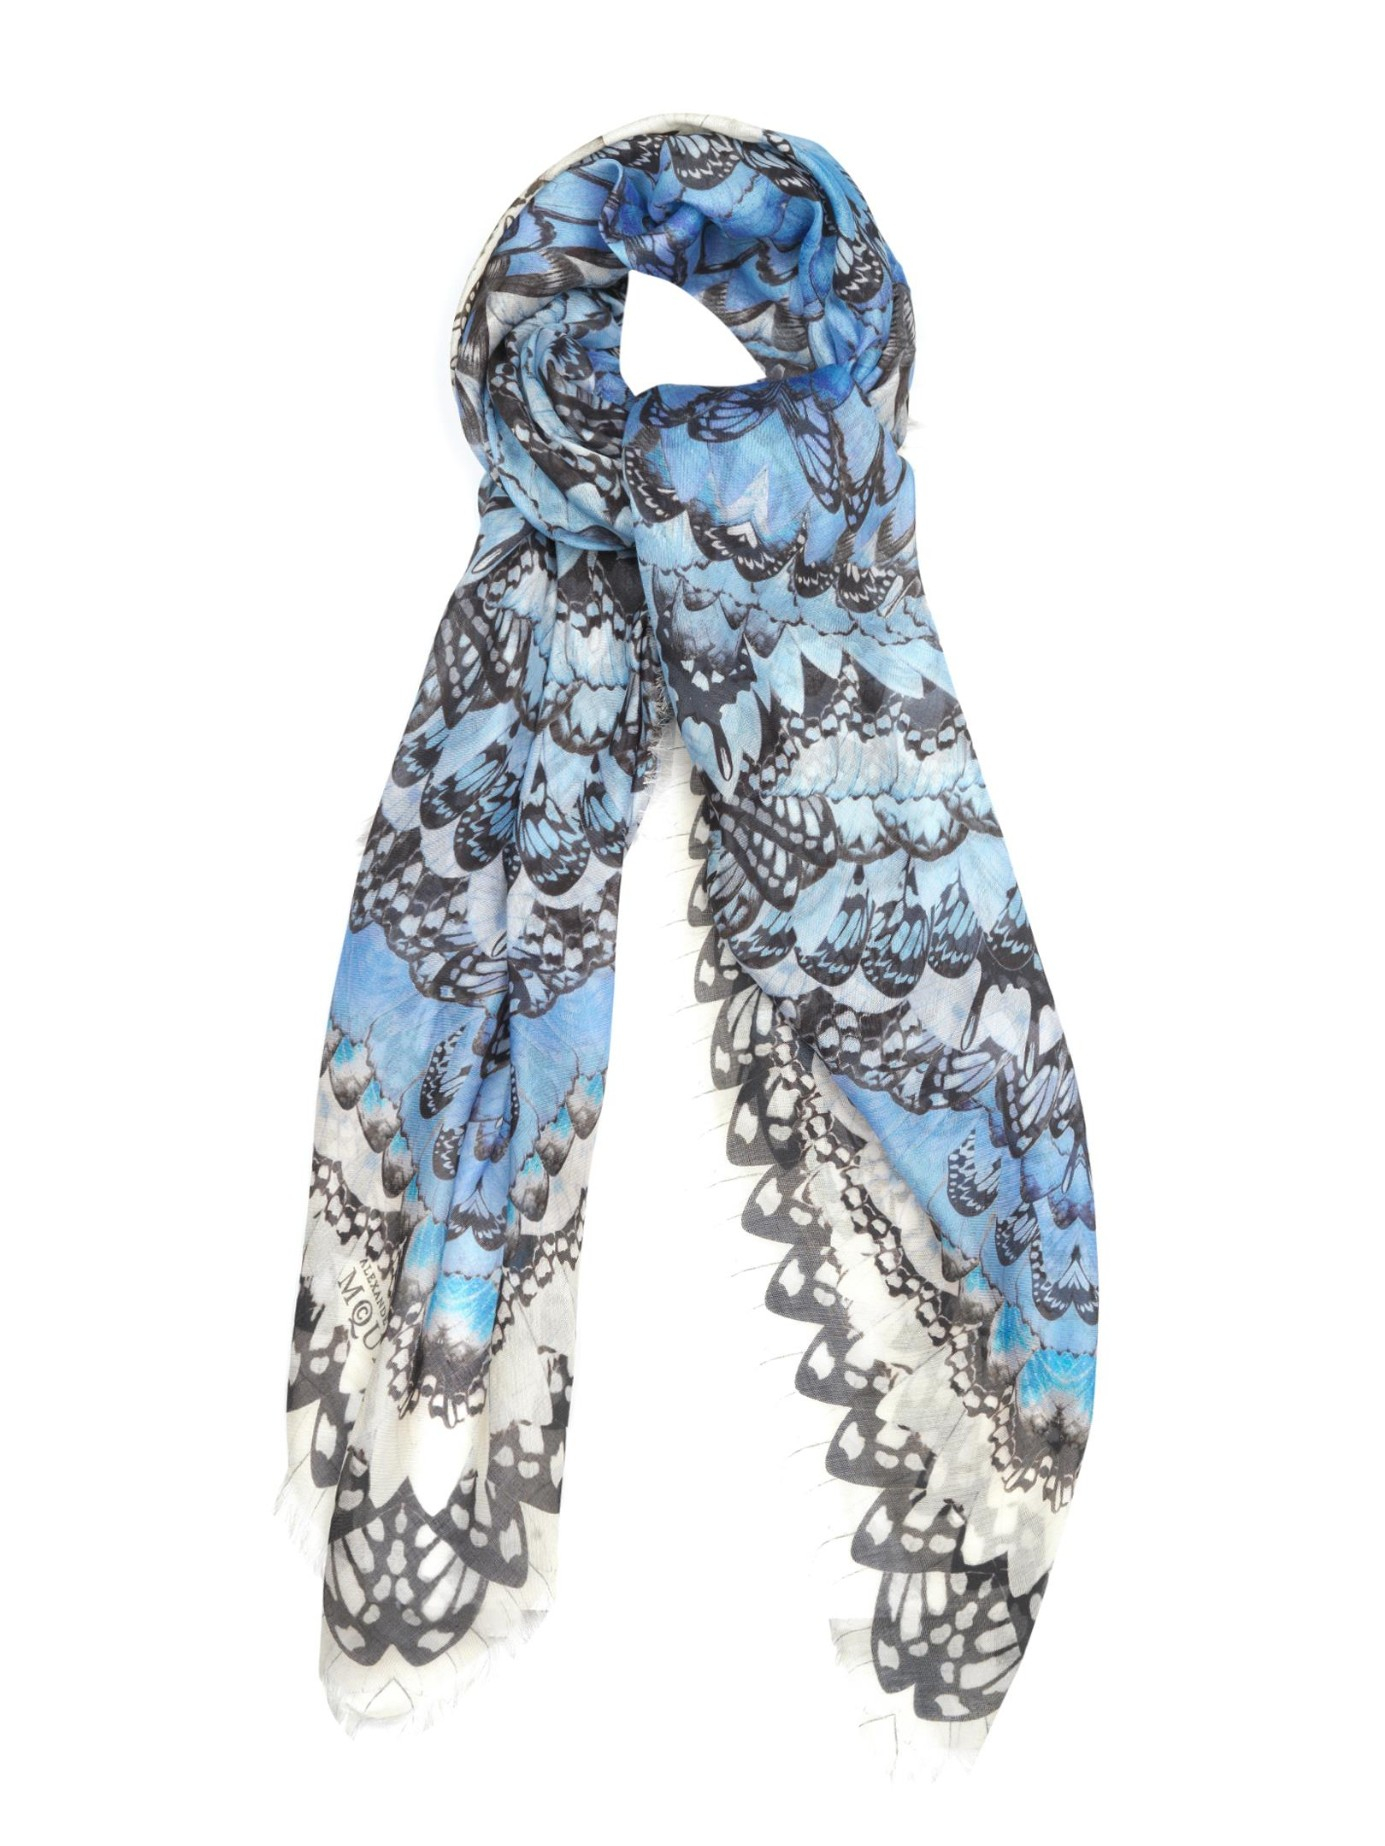 Alexander mcqueen Rainbow-Wings Print Scarf in Blue | Lyst